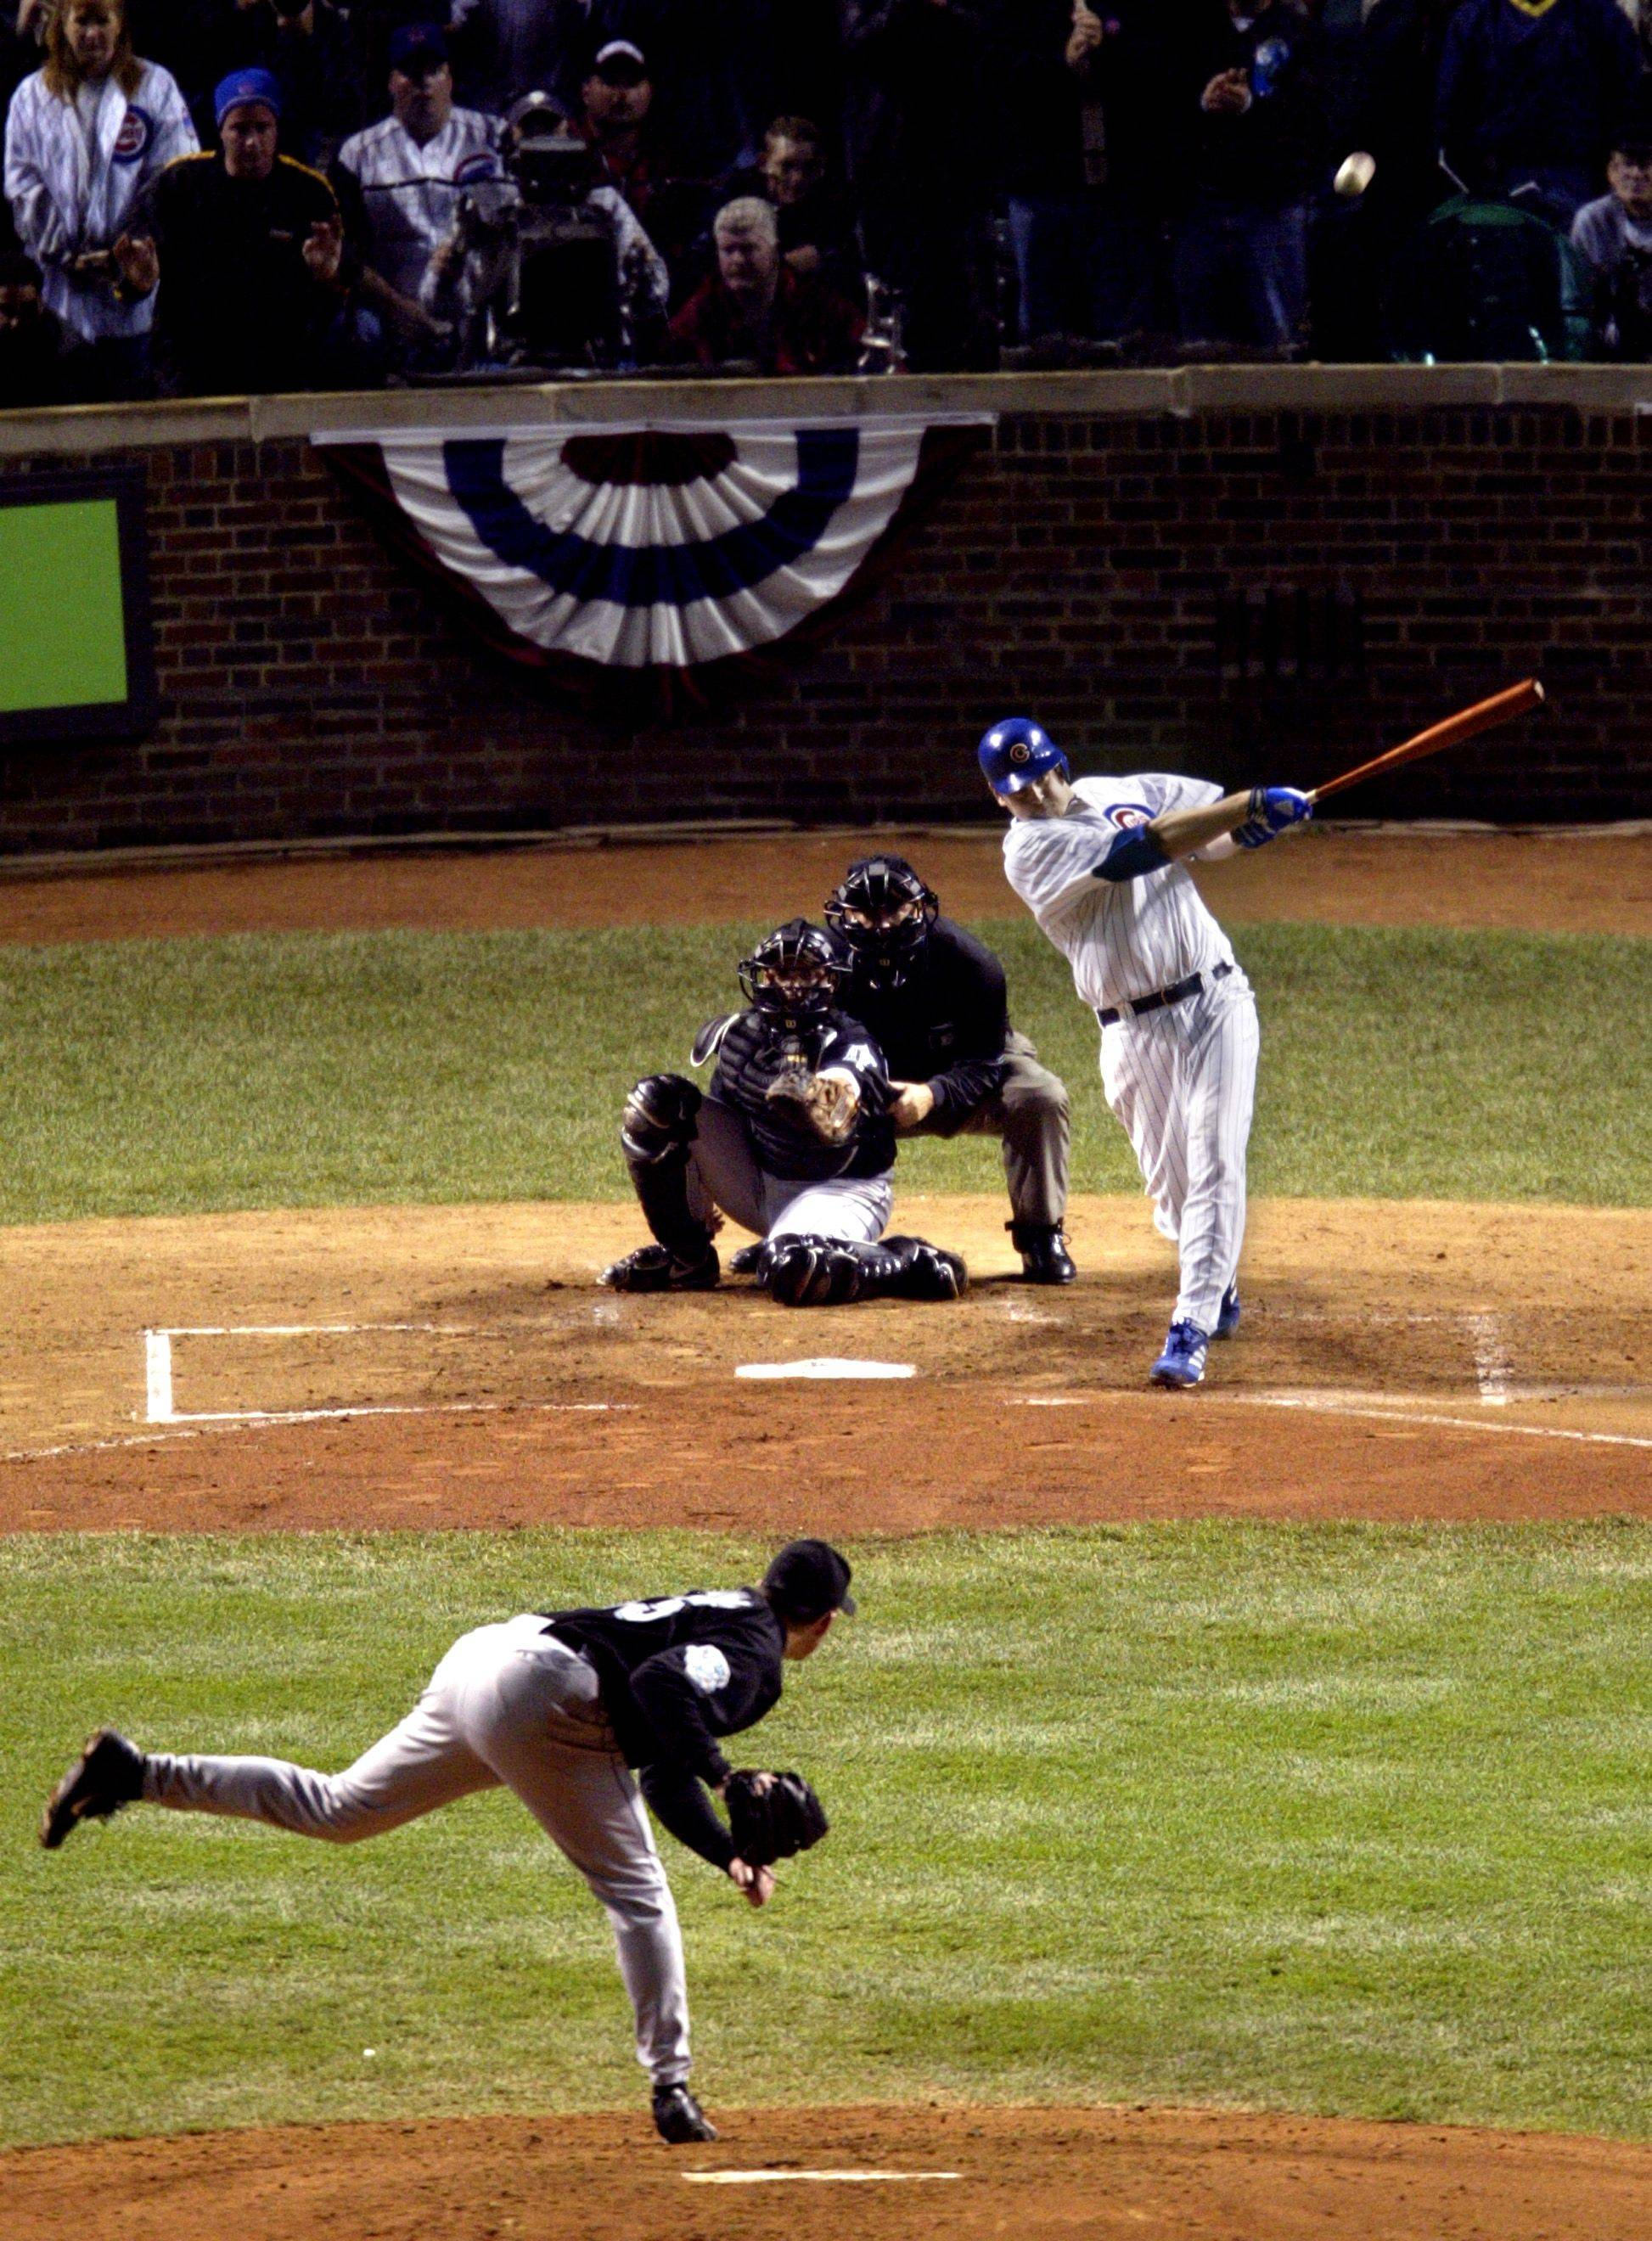 Chicago Cubs' Kerry Wood belts a three-run home run during the seventh game of the 2003 League Championship Series.